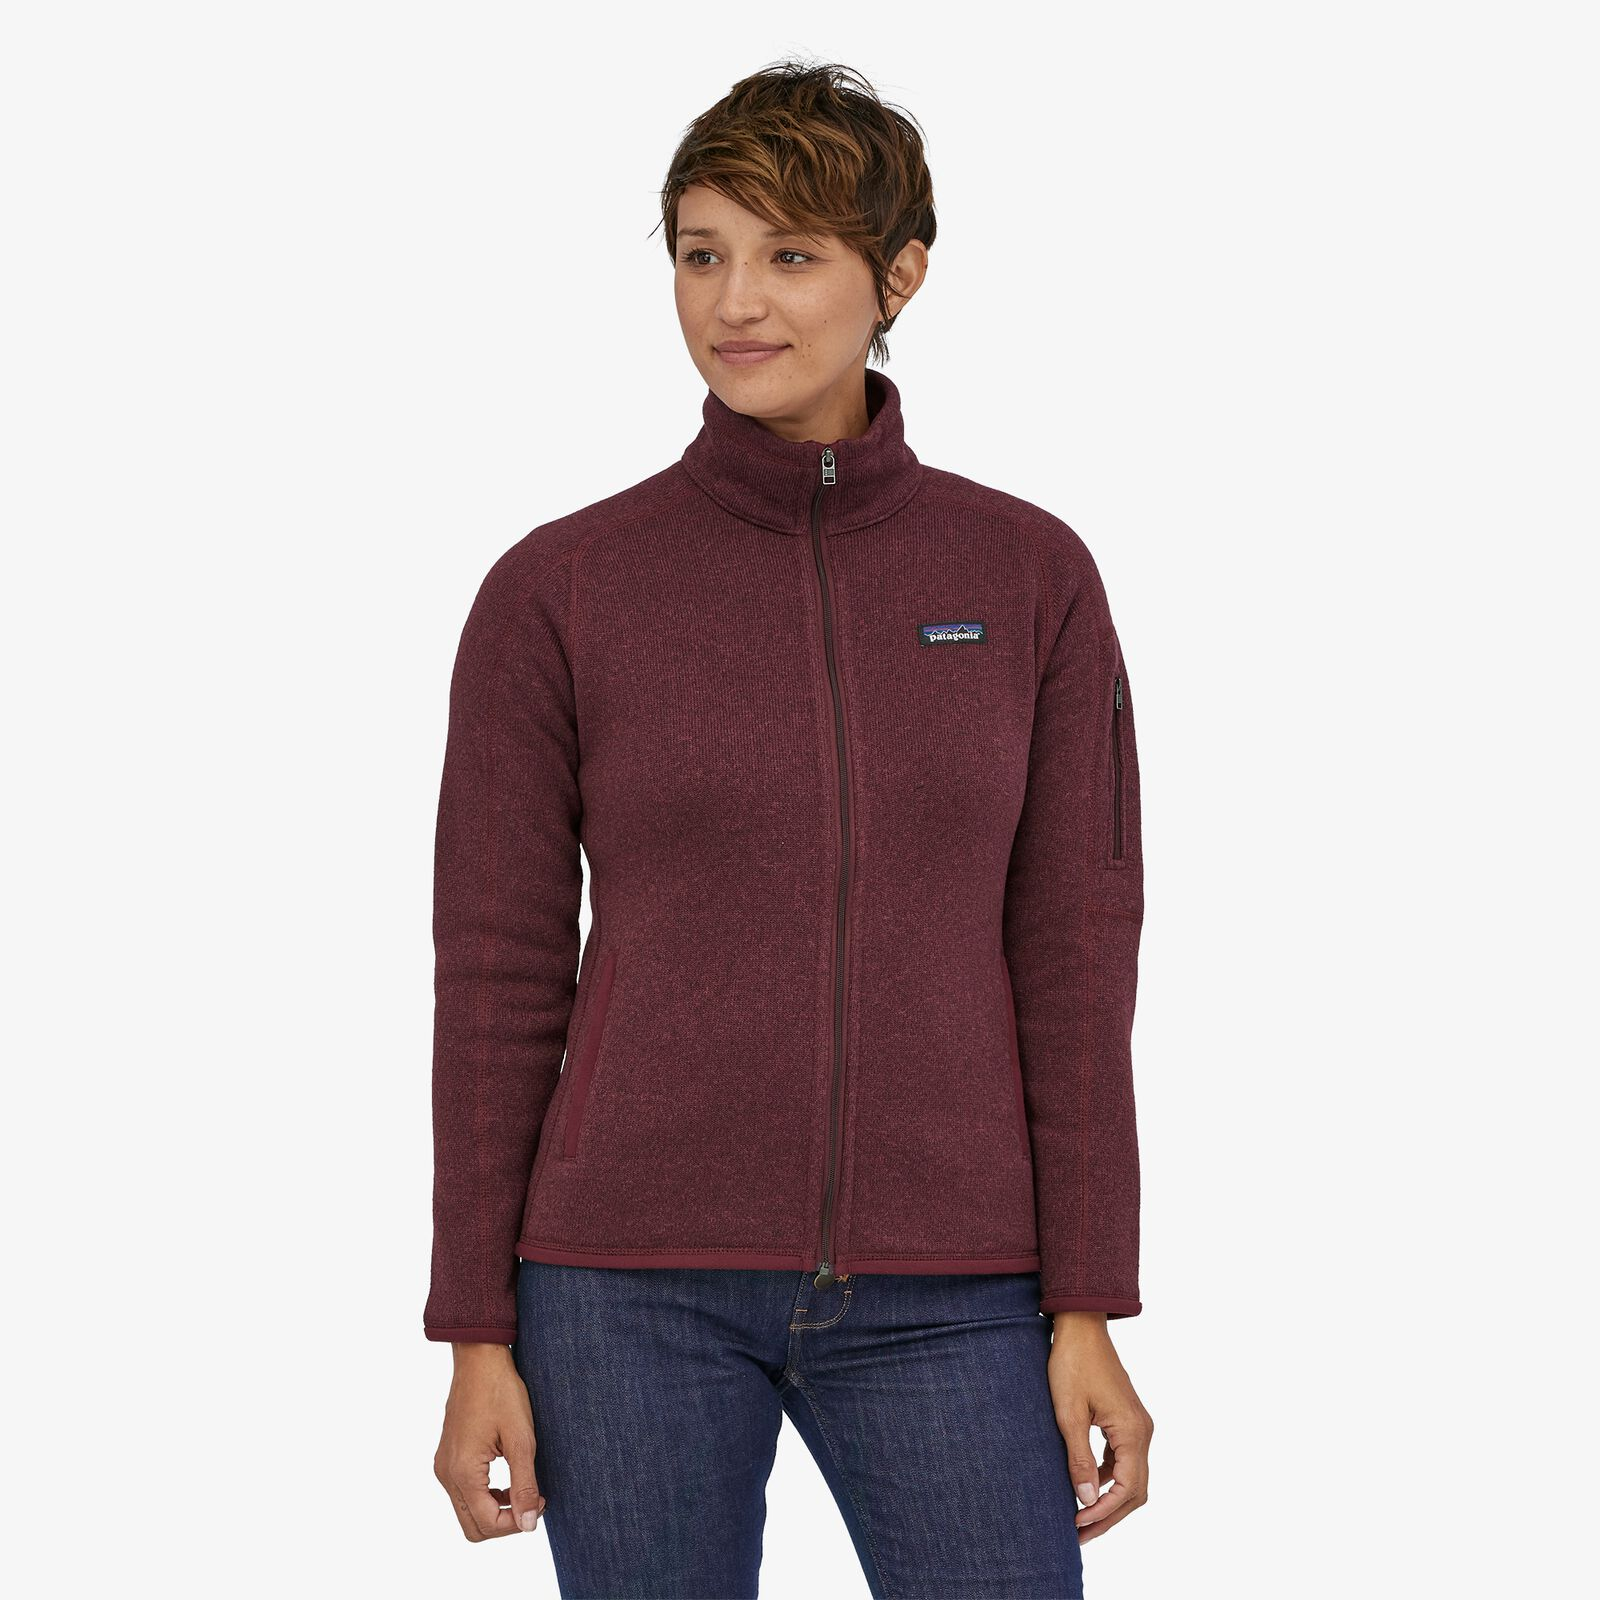 Patagonia - W's Better Sweater® Fleece Jacket - 100% Recycled Polyester - Weekendbee - sustainable sportswear